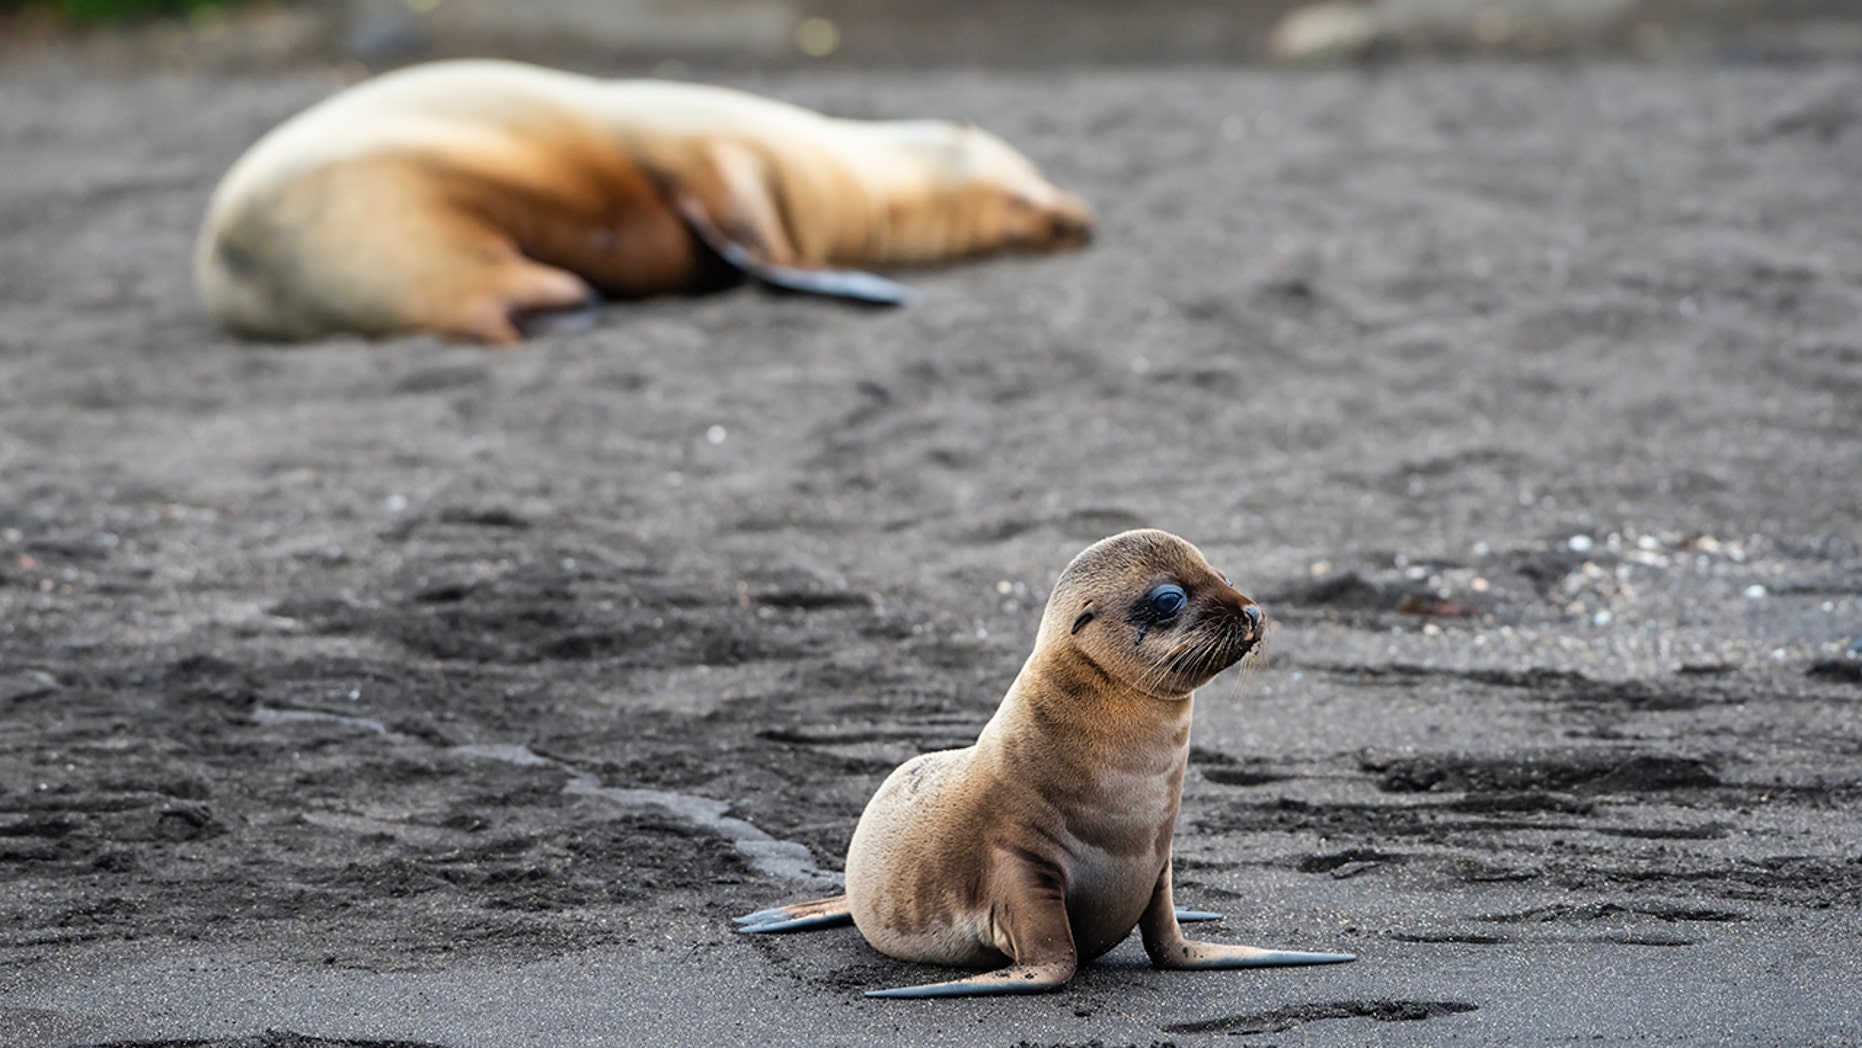 """Six fur seals were found decapitated in New Zealand in what officials have called a """"disturbing, brutal and violent"""" crime. (istock)"""